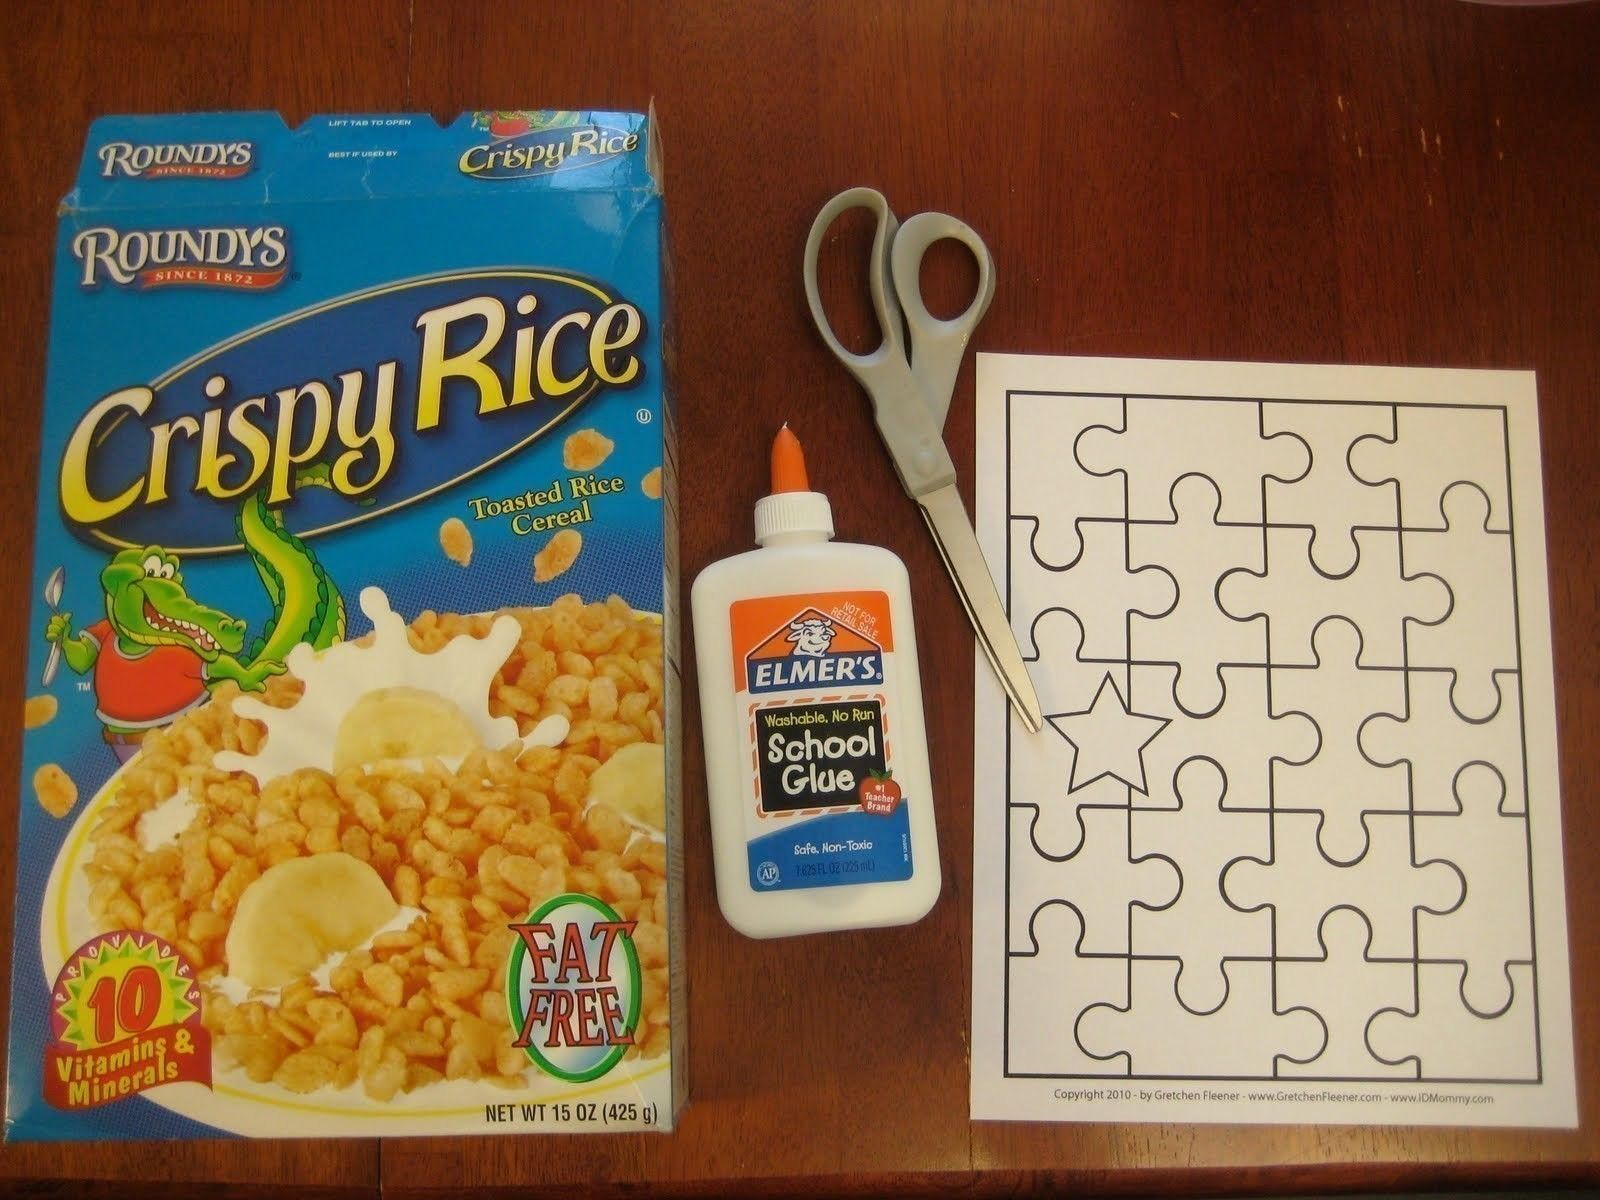 Diy recycled cereal box puzzle diy recycle cereal and scissors id mommy project diy recycled cereal box puzzle free tutorial with pictures on how to make a puzzle in under 30 minutes by papercrafting with scissors ccuart Choice Image